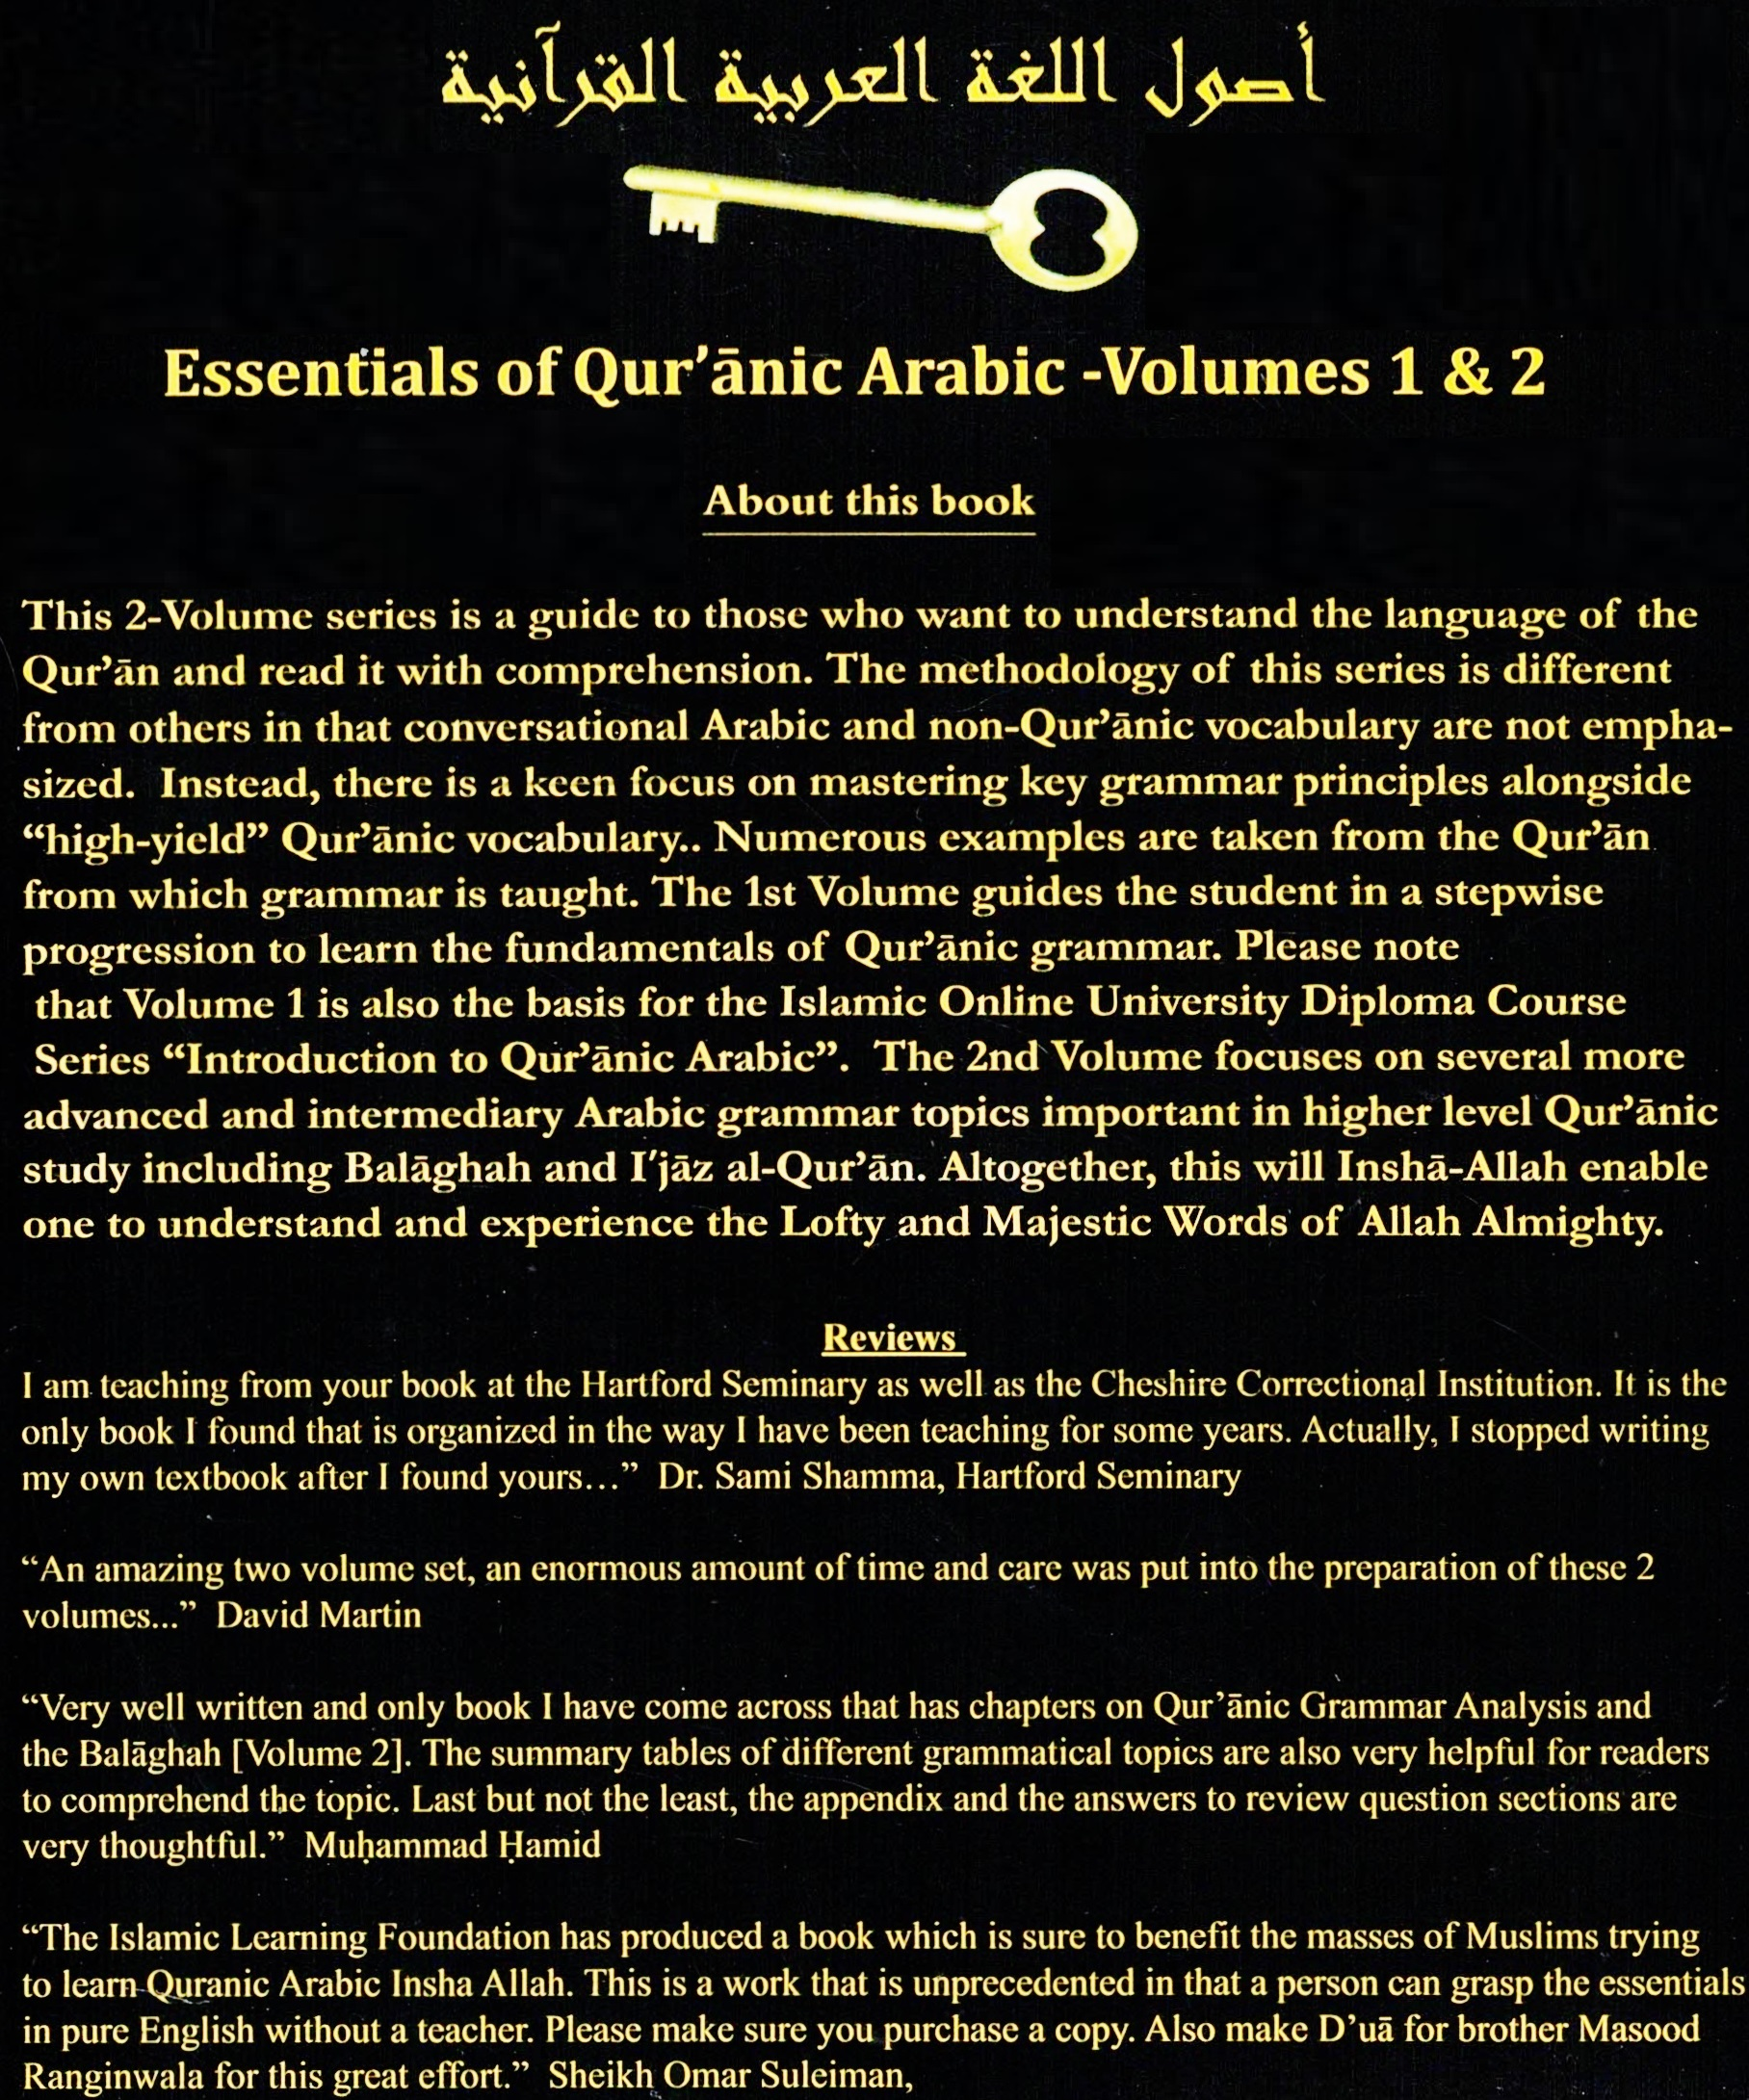 essentials-of-quranic-arabic-volumes-1-and-2-2-..jpg